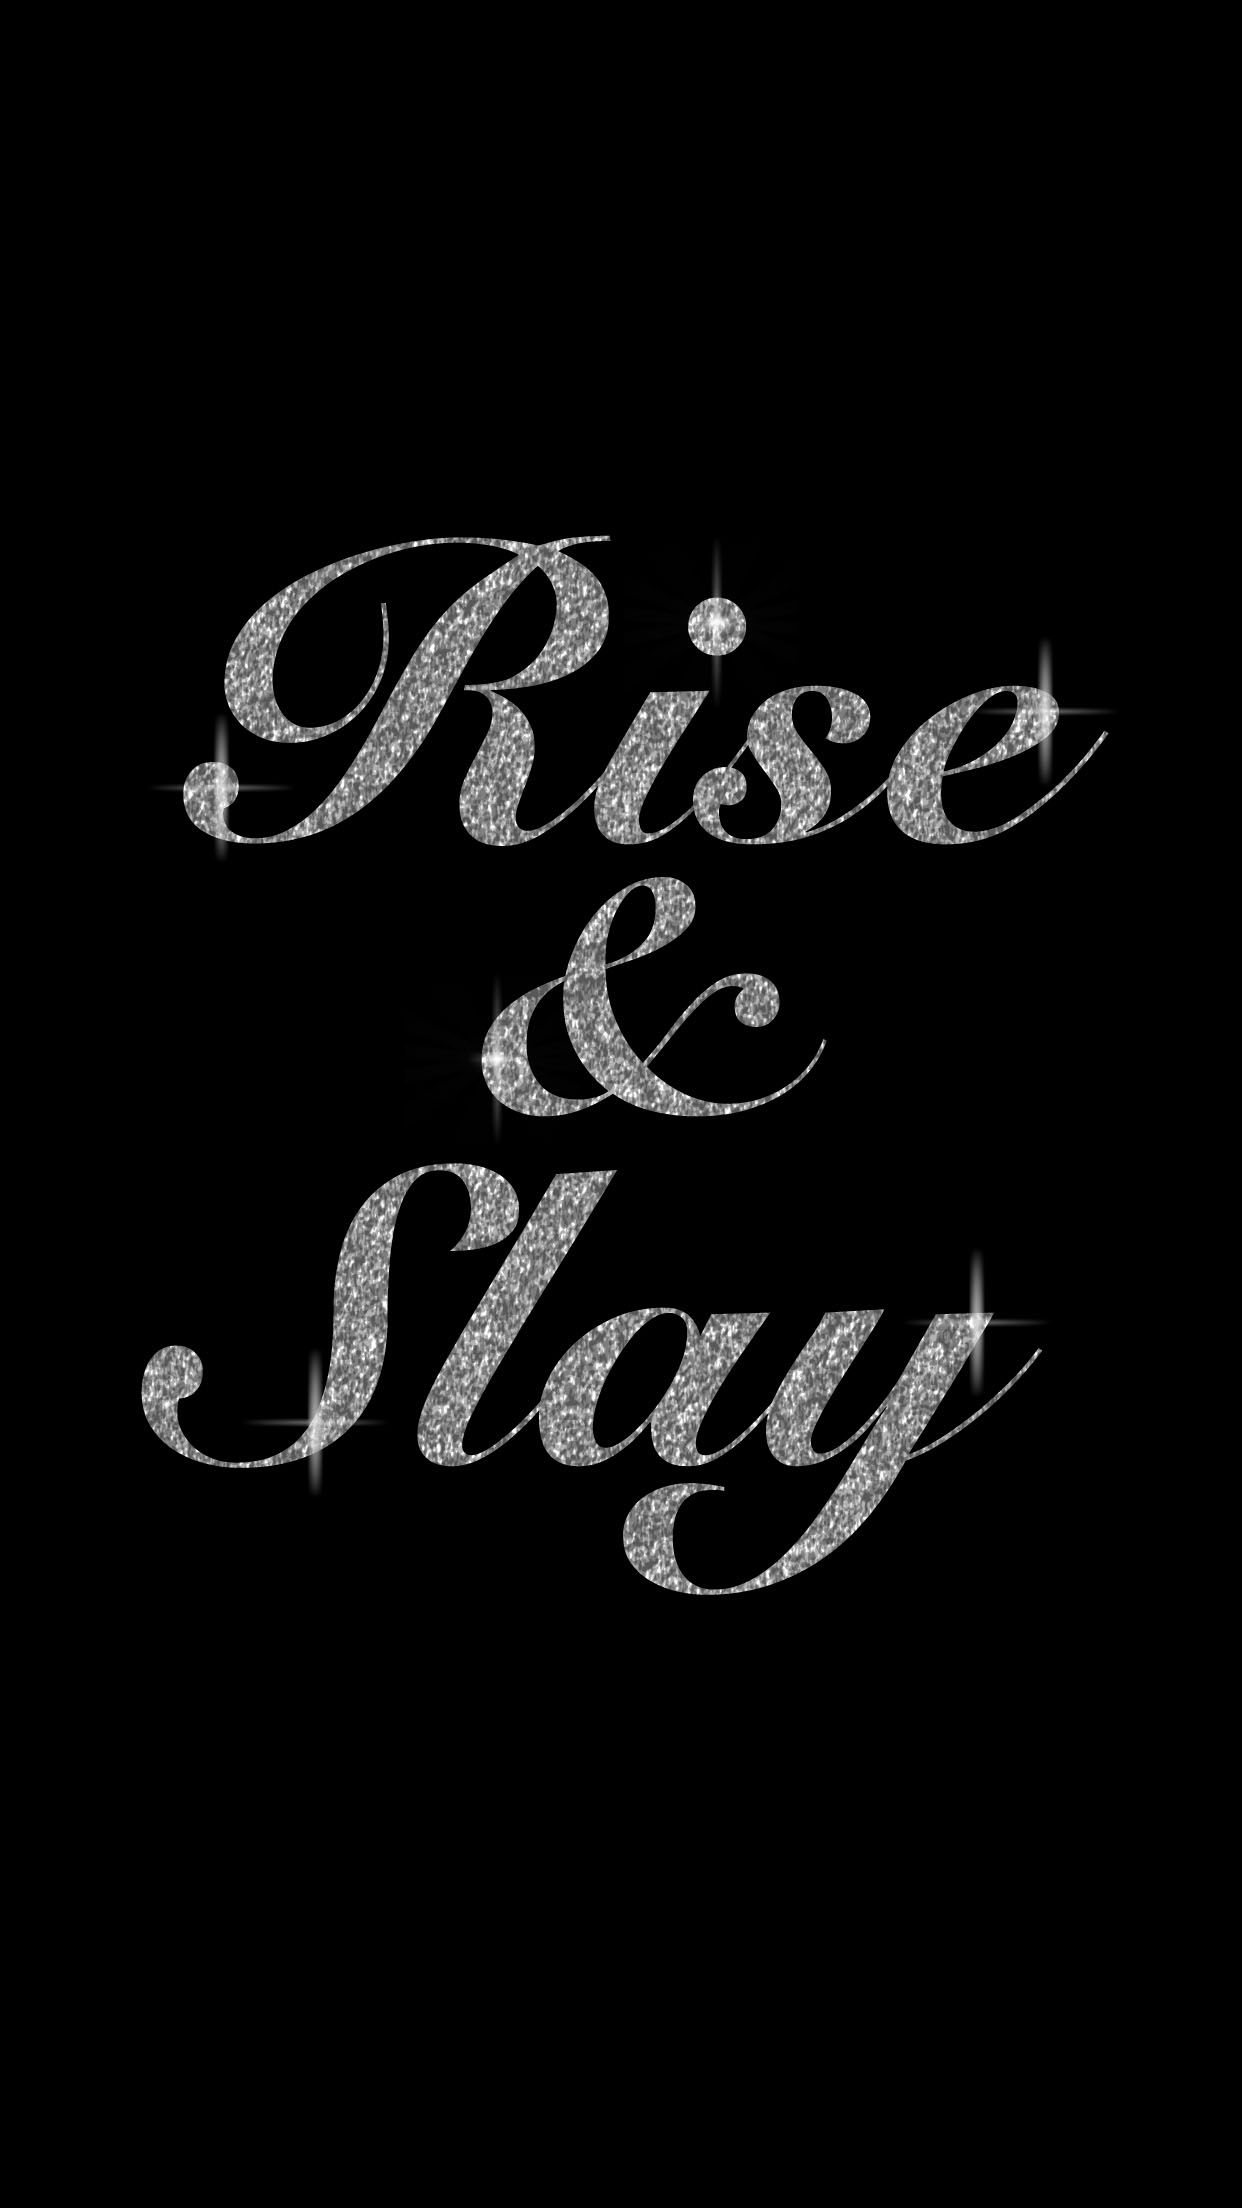 Rise And Slay Everyday Quotes Lockscreen Iphone Background Glitter Glitter Phone Wallpaper